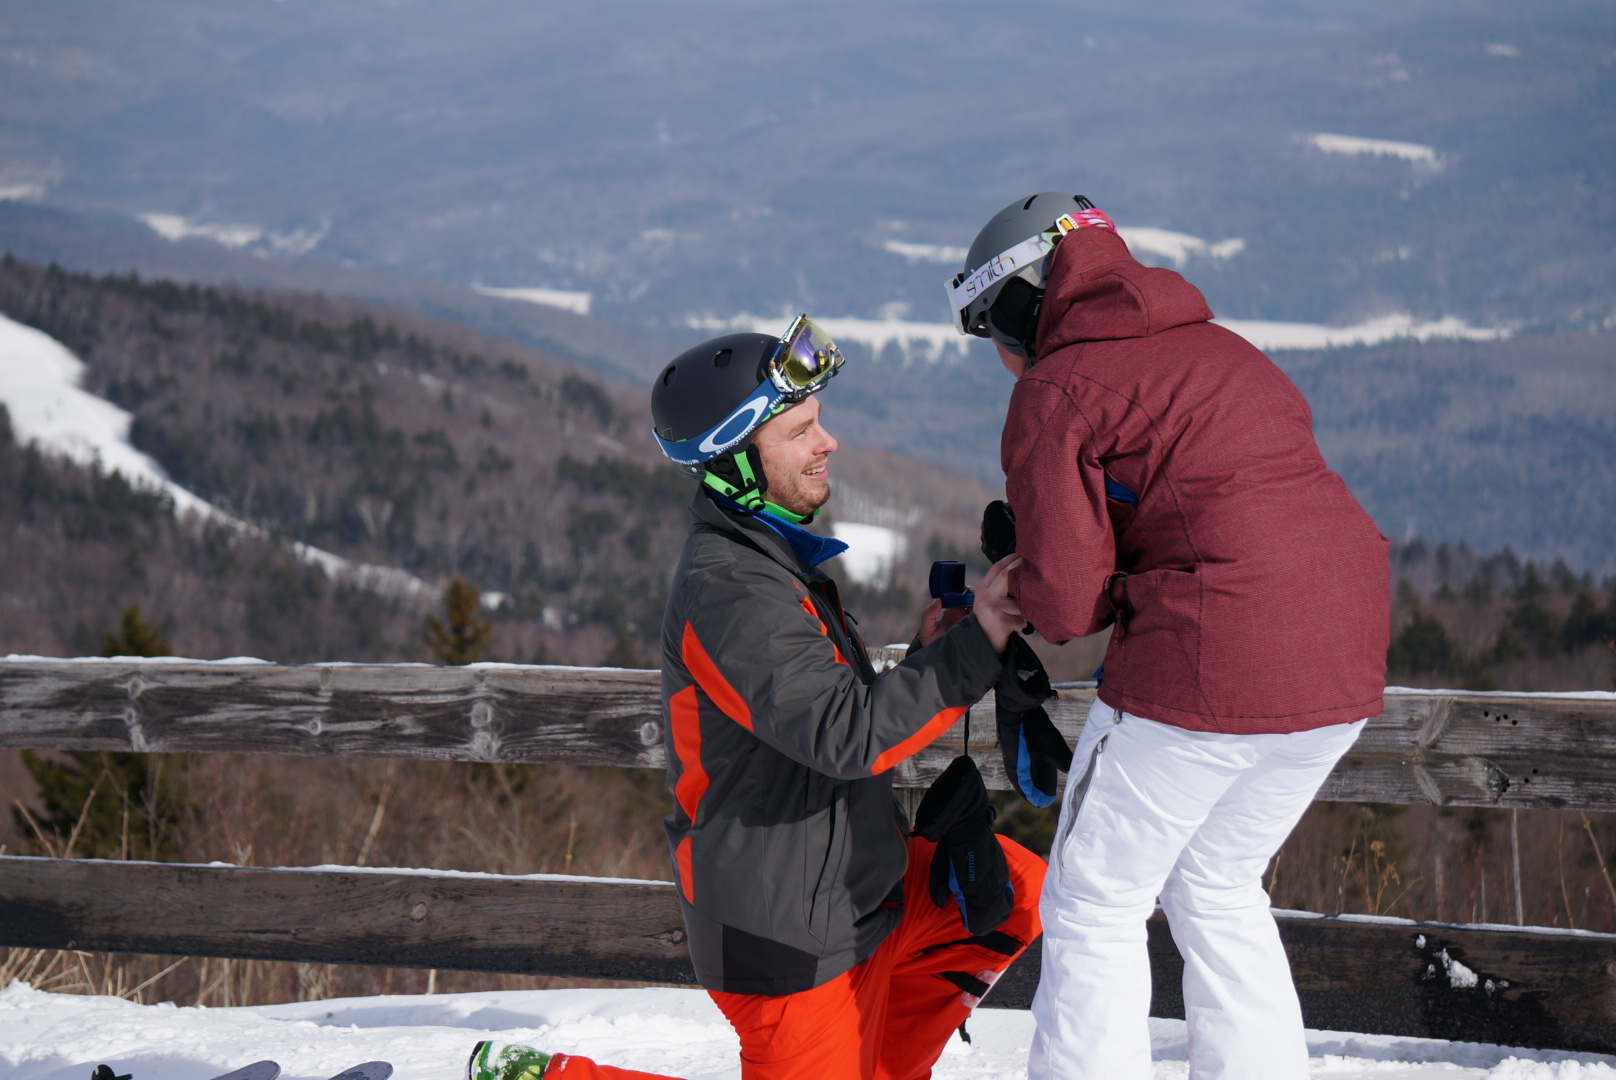 Image 5 of Sarah and Jimmy | The Perfect Mountaintop Proposal